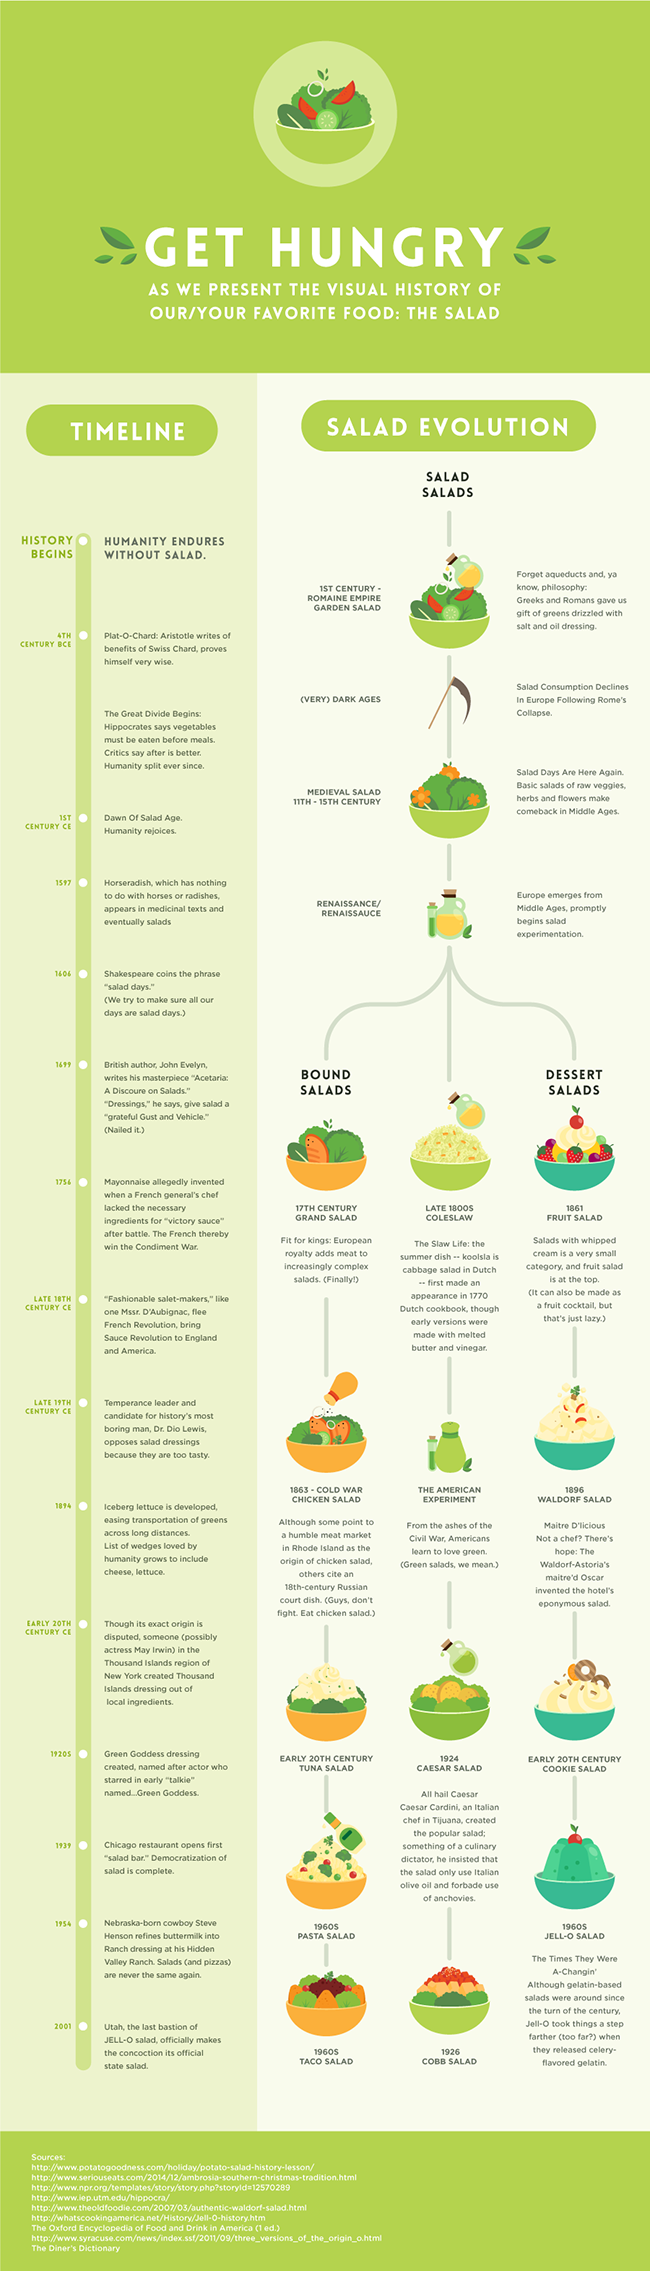 Get hungry - the evolution of salads #Infographic